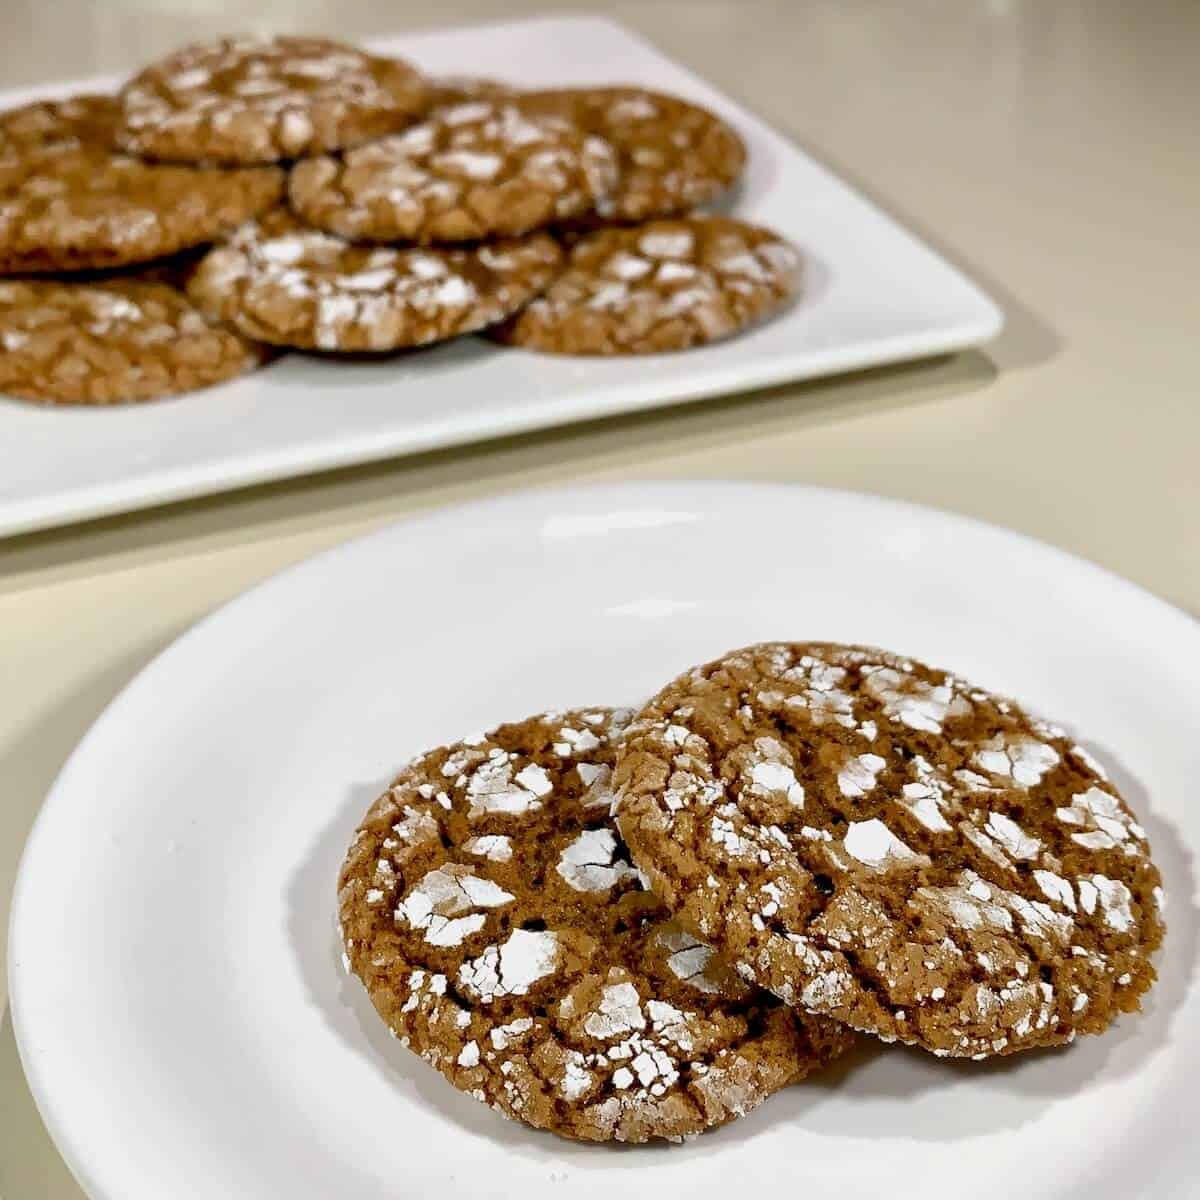 Molasses cookies stacked on a white plate with more cookies in background.